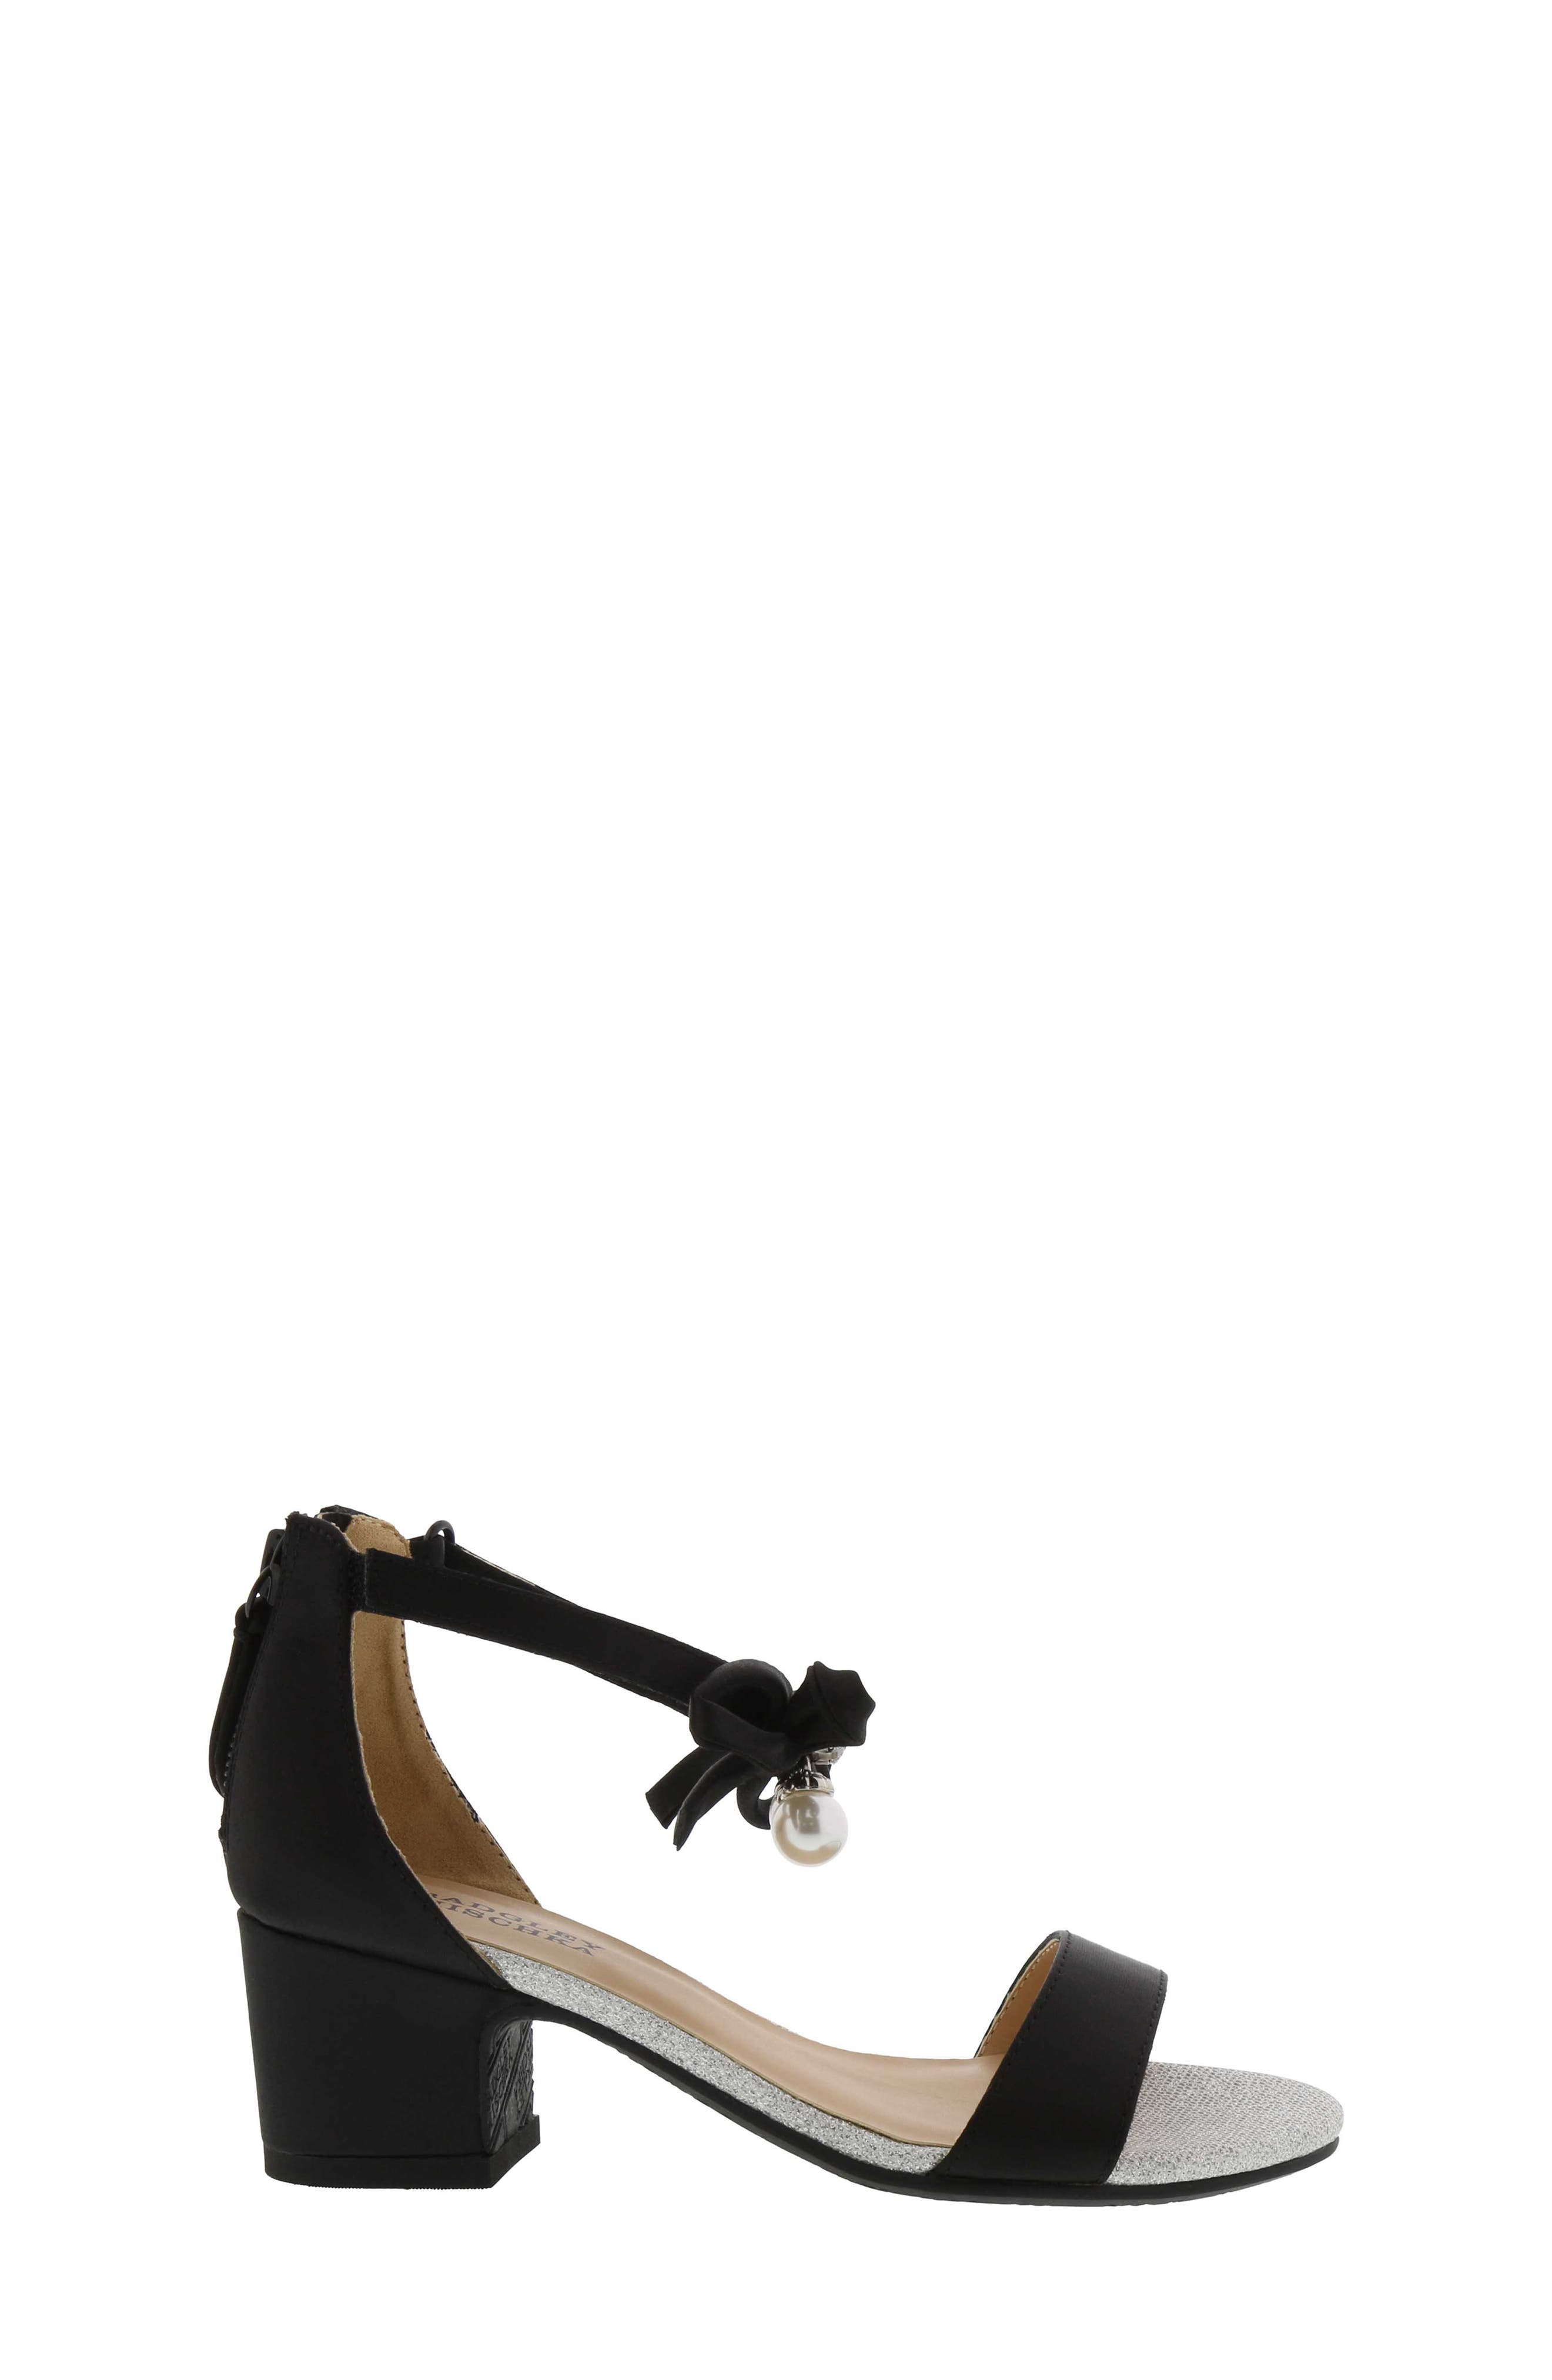 Pernia Embellished Sandal,                             Alternate thumbnail 3, color,                             BLACK